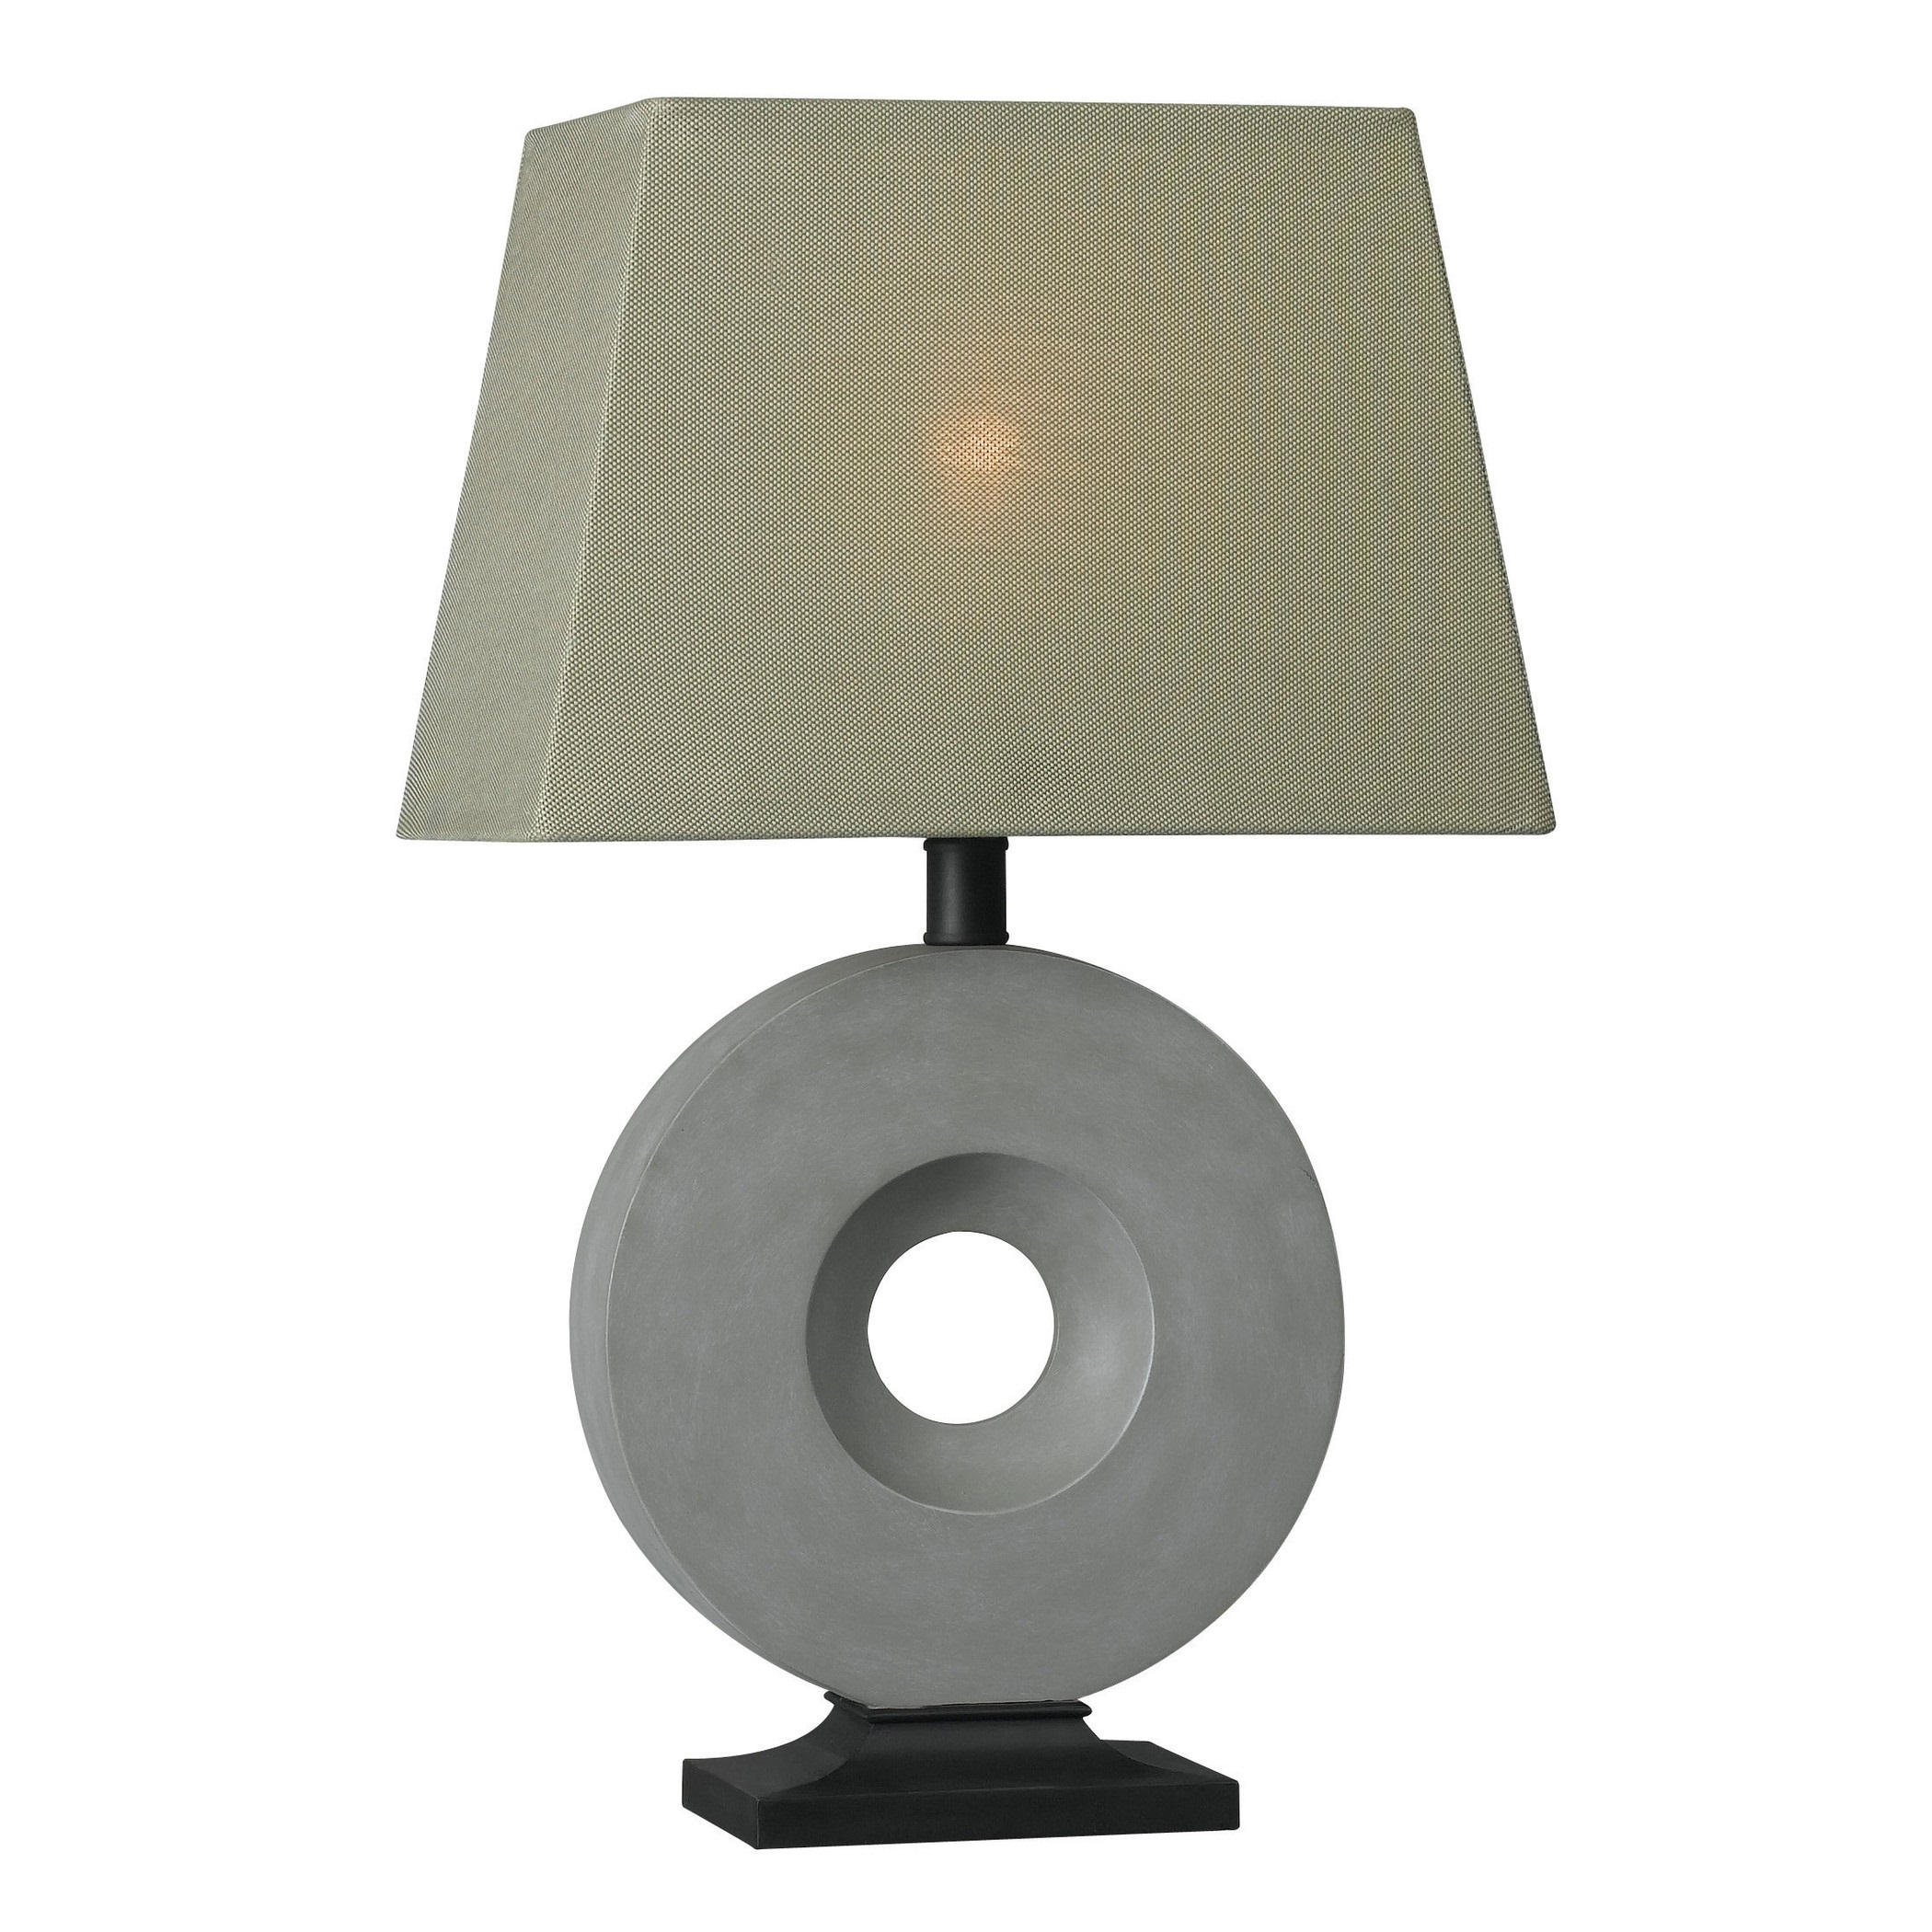 Kenroy home outdoor neolith 1 light table lamp l brilliant - Kenay home lamparas ...